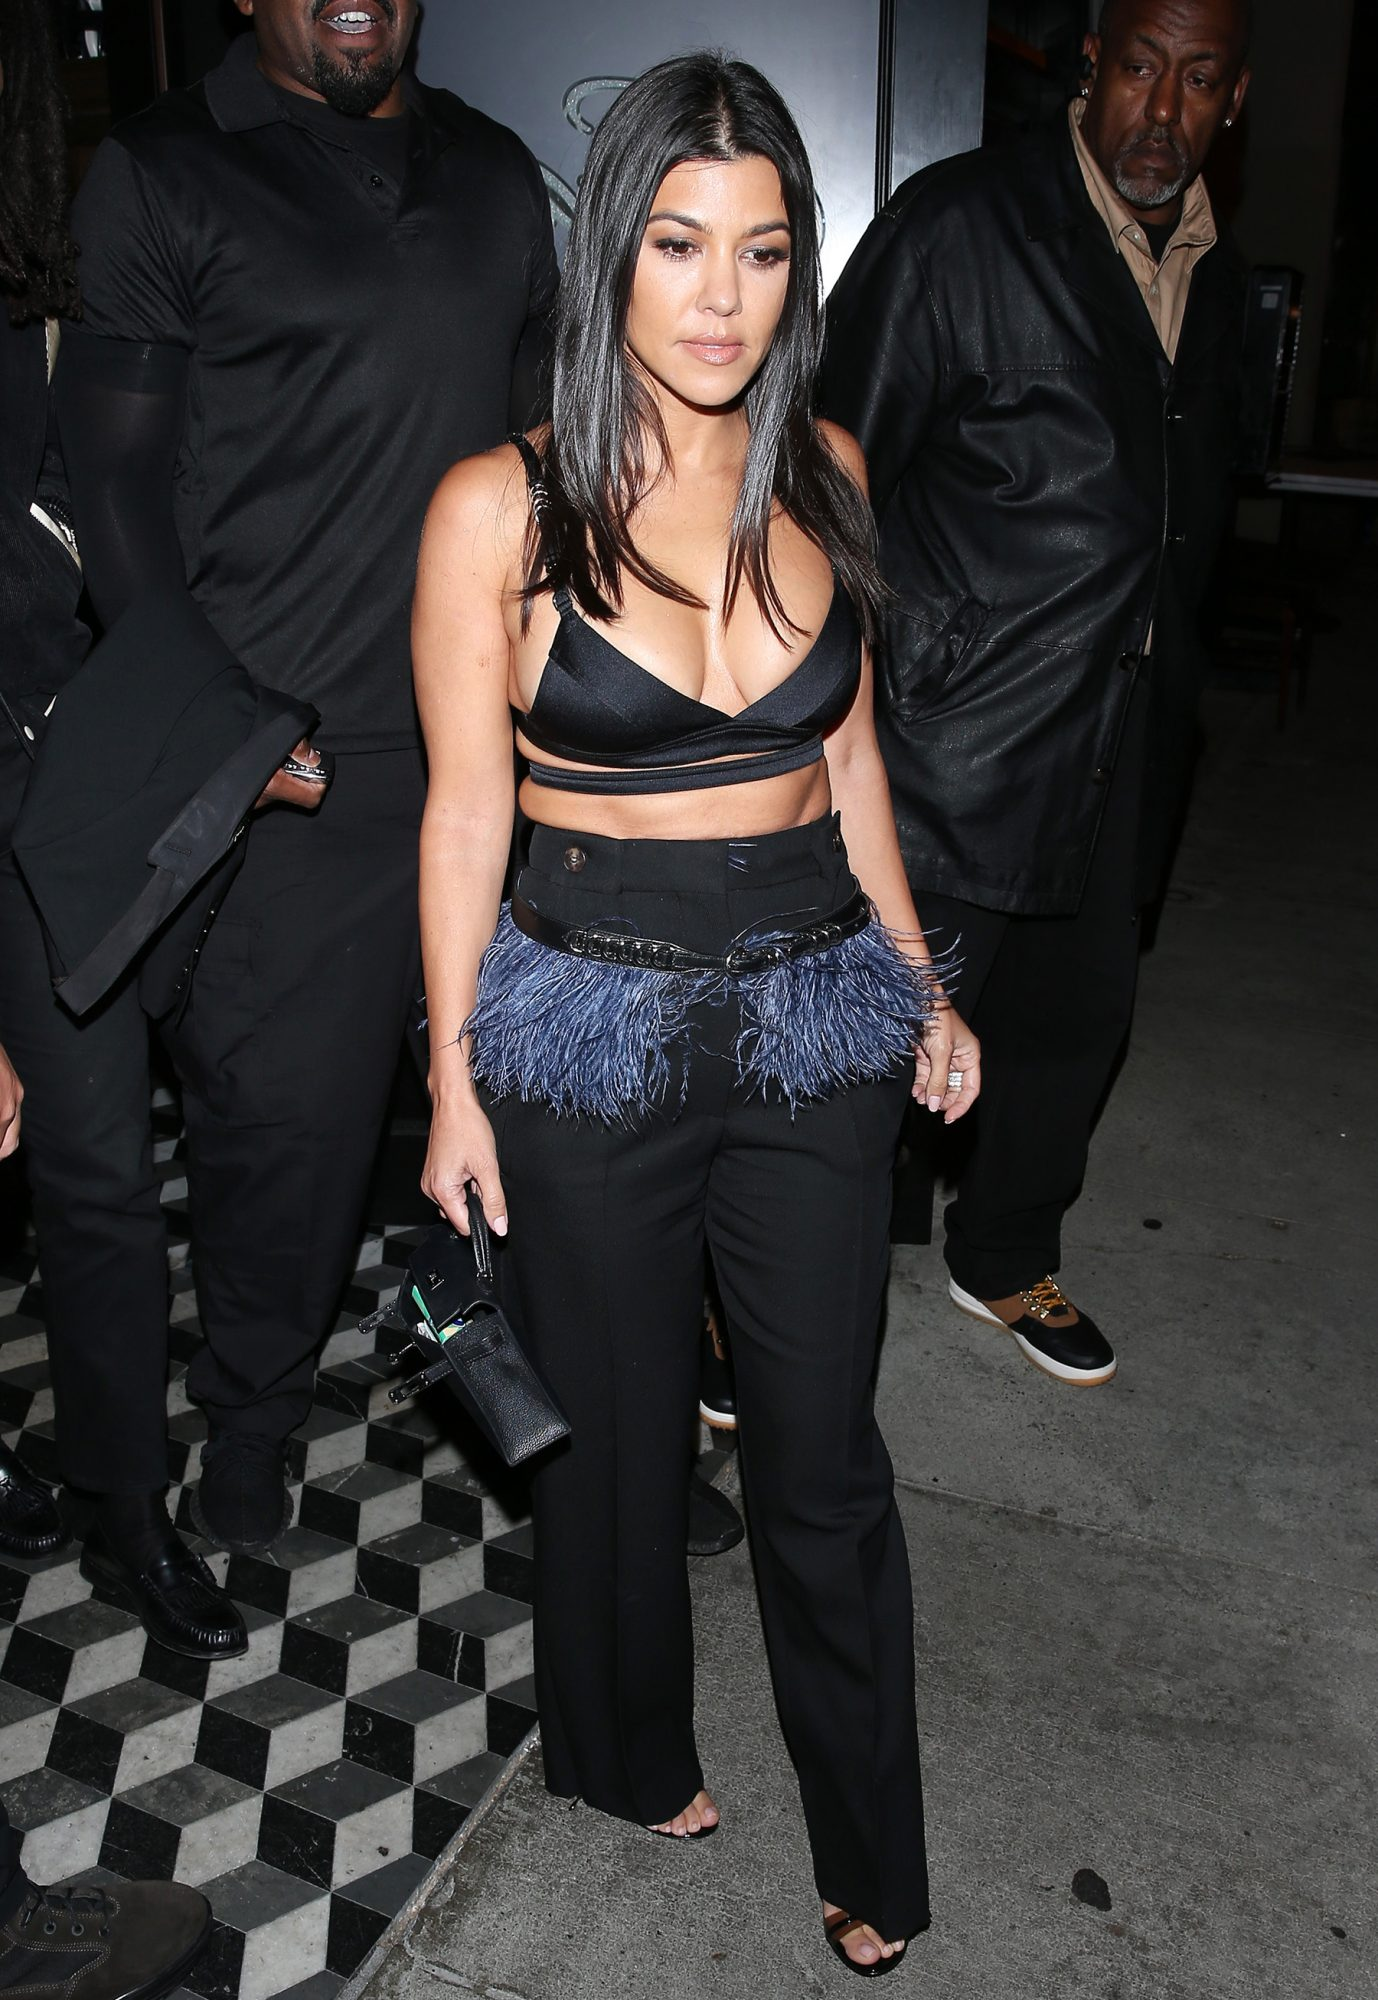 Kourtney Kardashian leaves dinner at 'Craigs' with Ex Luka Subbat and Model Winnie Harlow in West Hollywood, CA. 11 Jul 2019